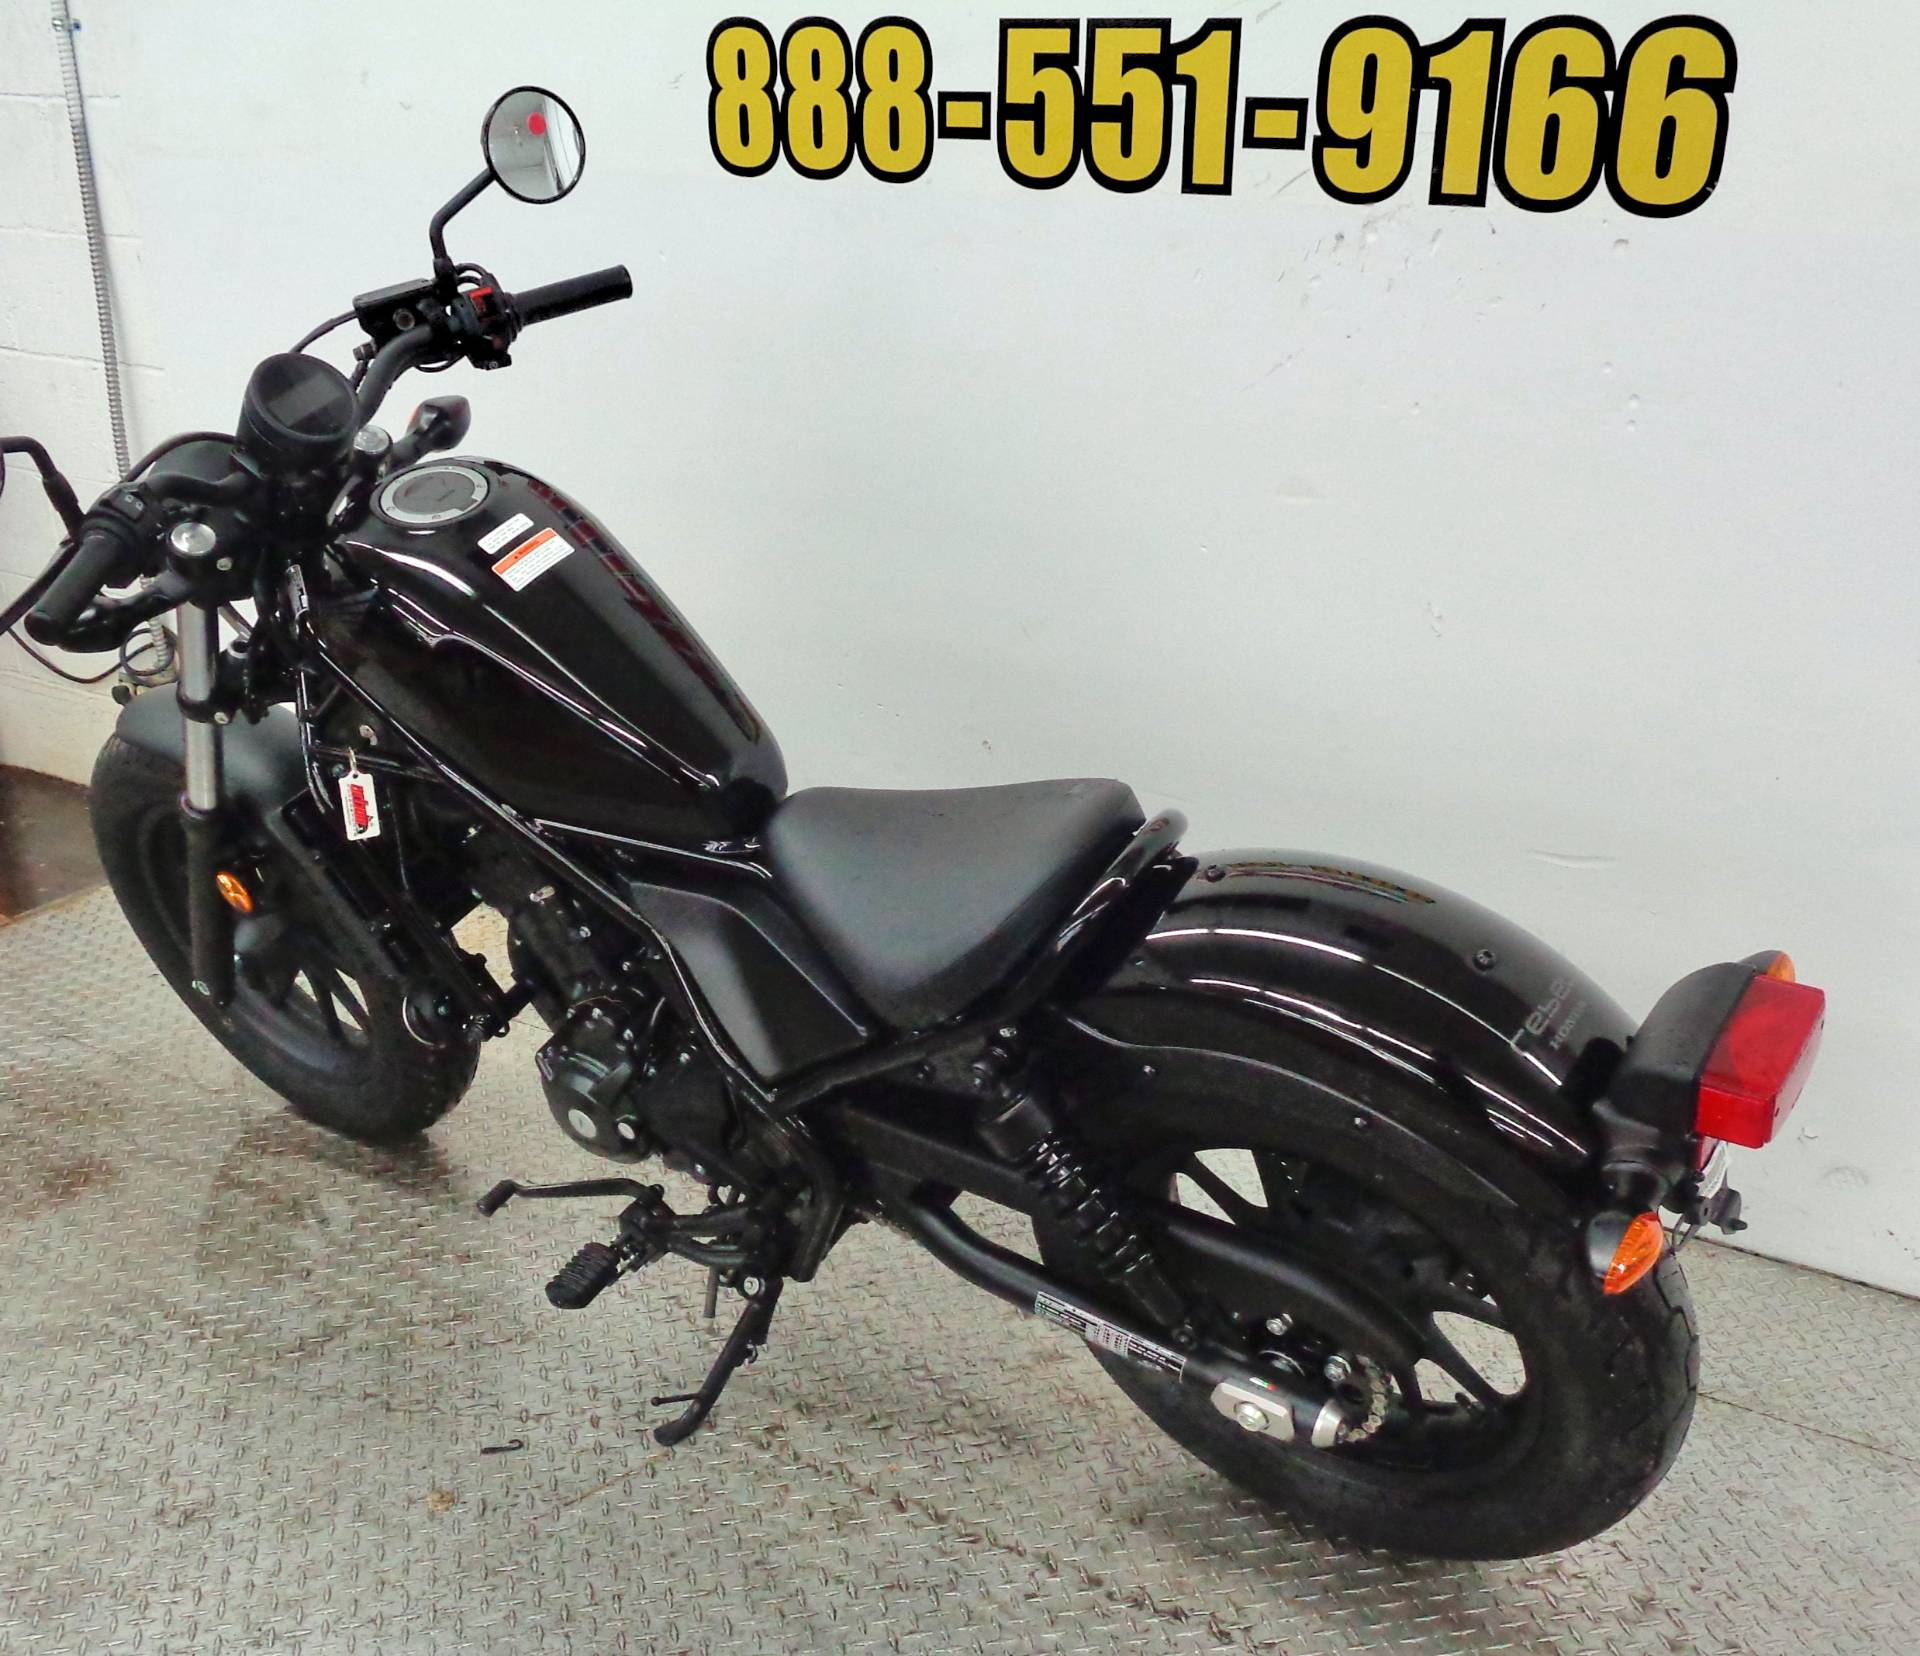 2018 Honda Rebel 300 10